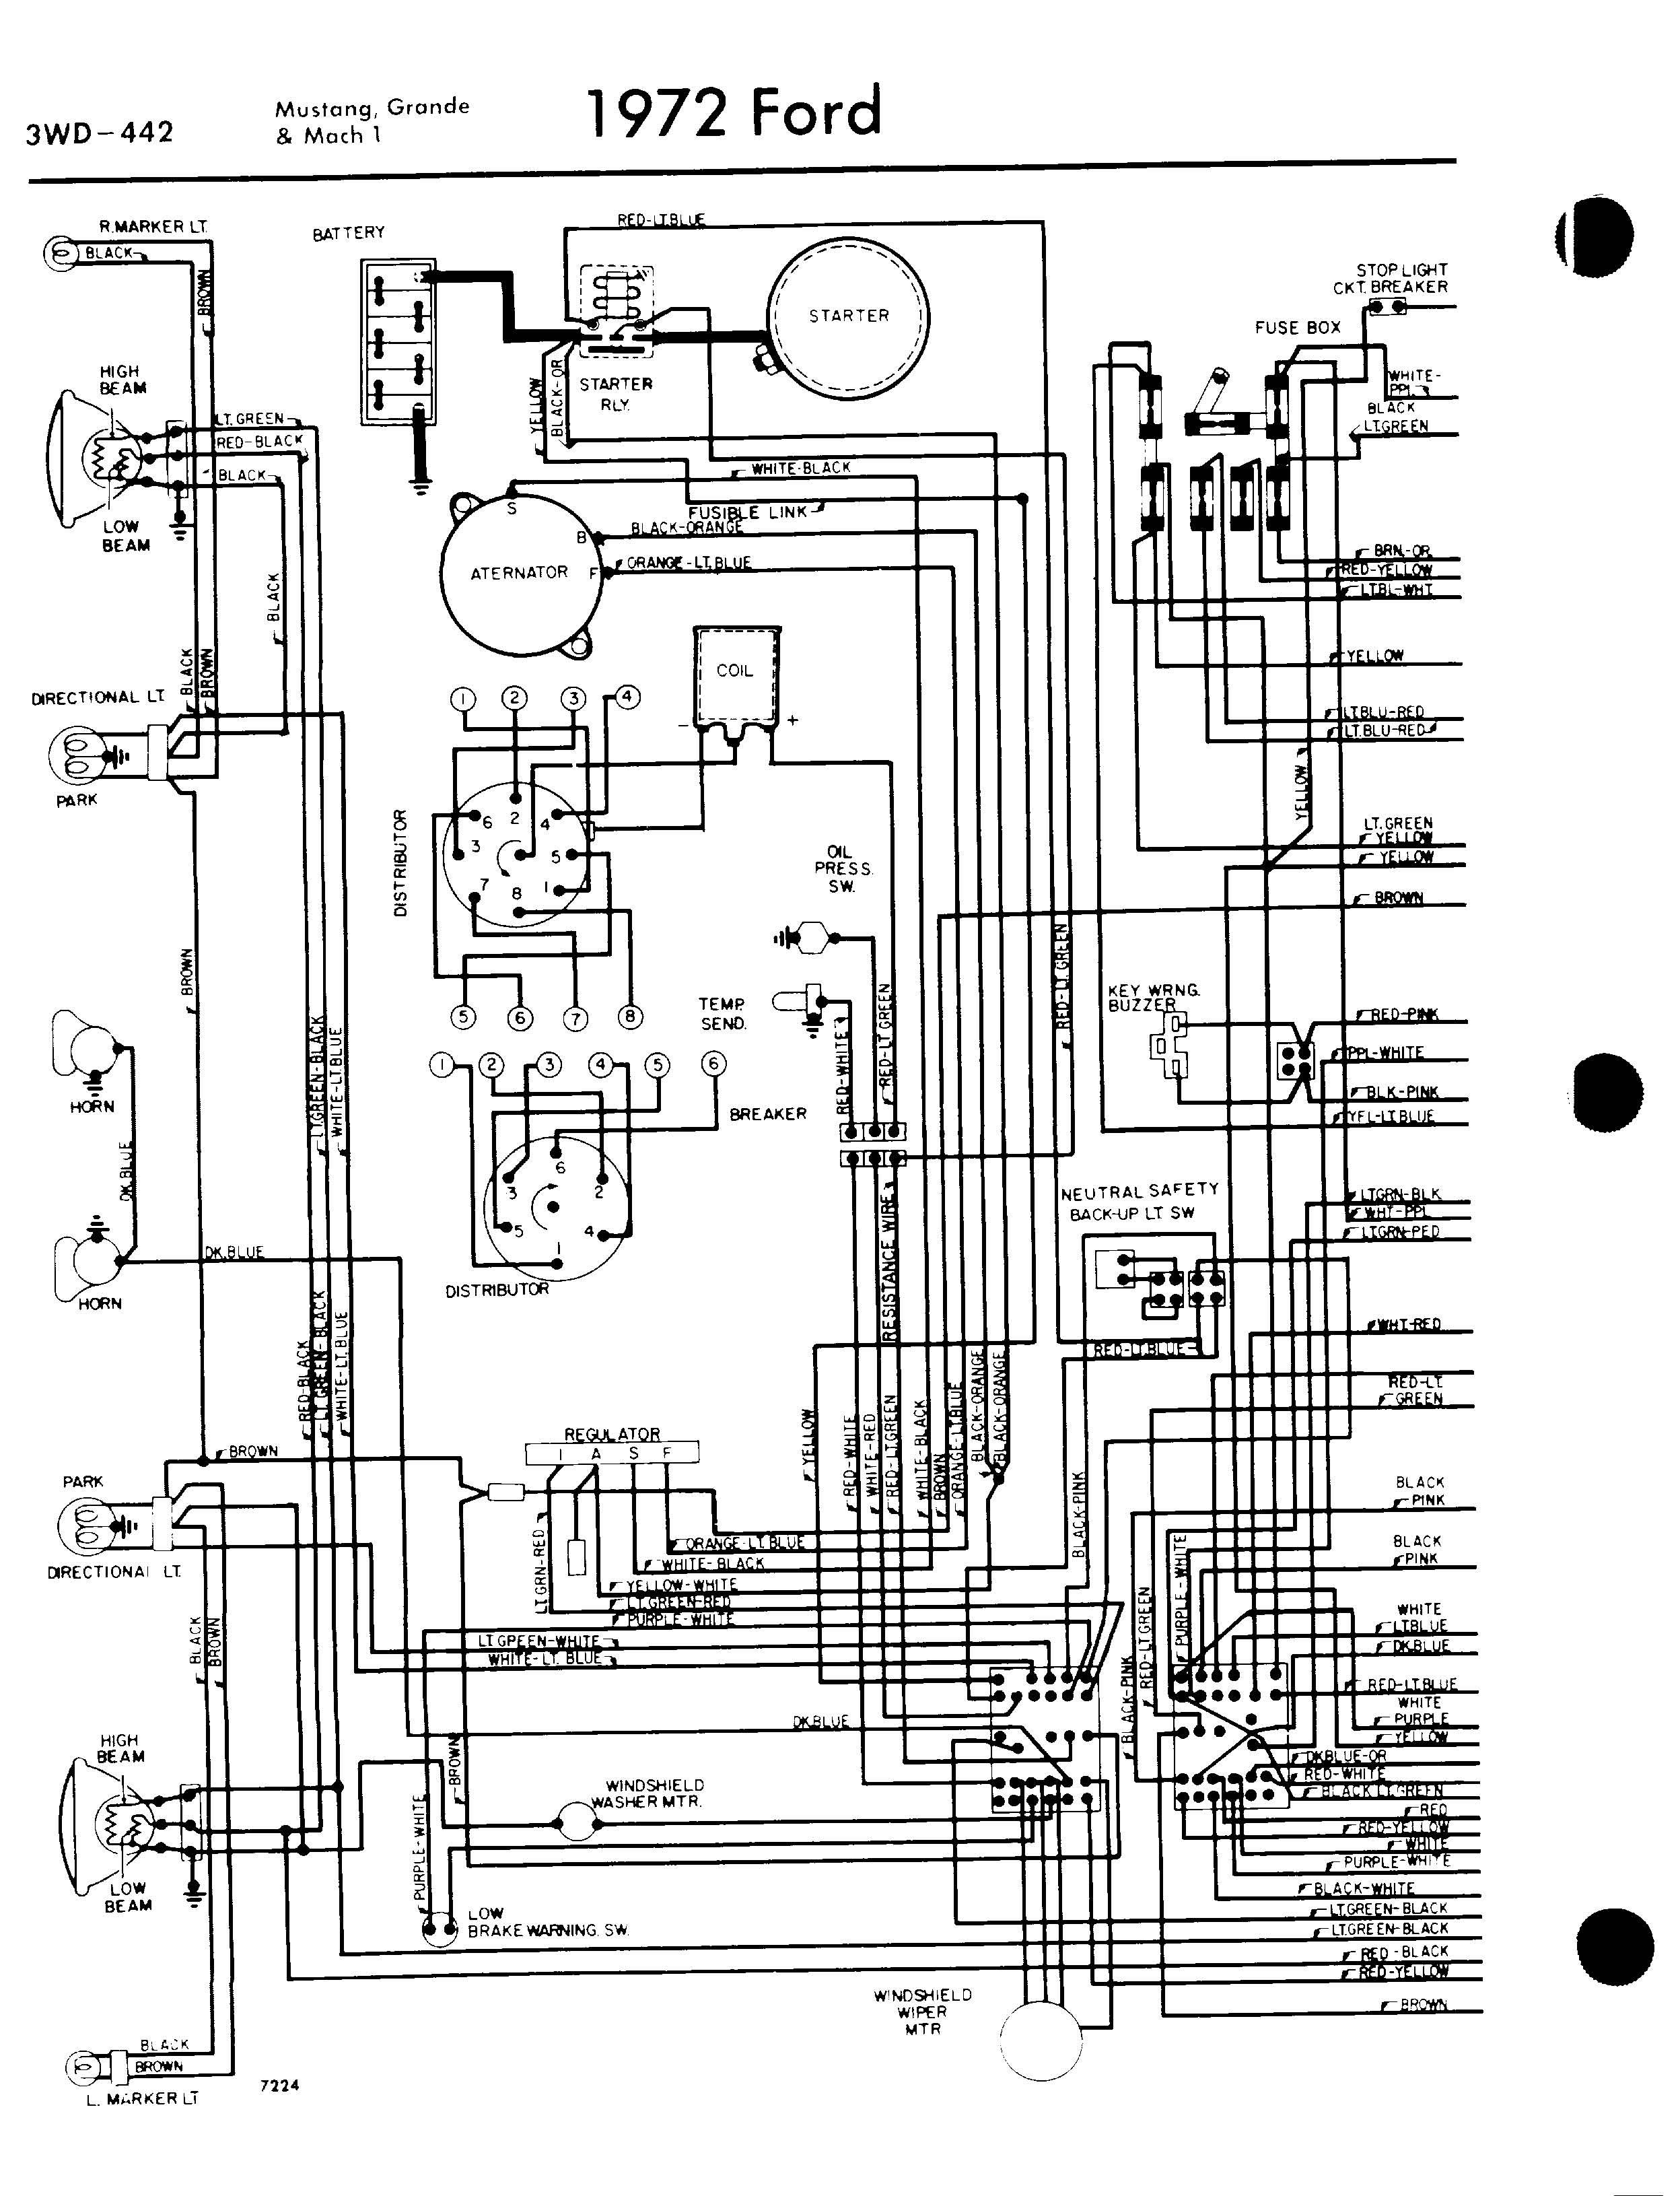 71af7a58e095e6a7716b32f1b23e8bd2 72 mach1 alternator wire harness diagram yahoo search results 1970 ford mustang wiring diagram at n-0.co